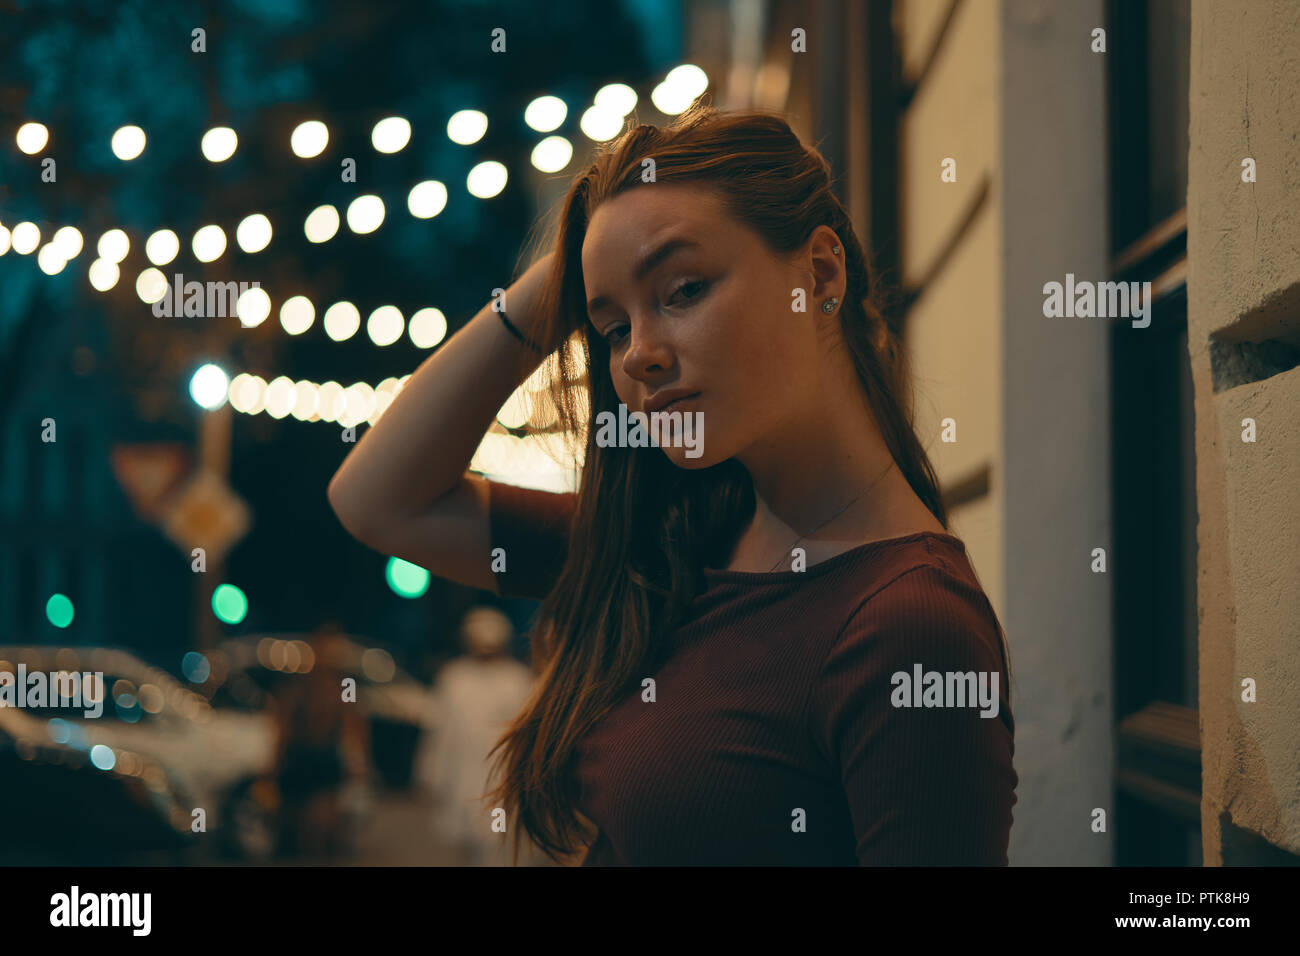 Girl Night Lights Half Length Portrait Of An Attractive Girl Dressed In Casual